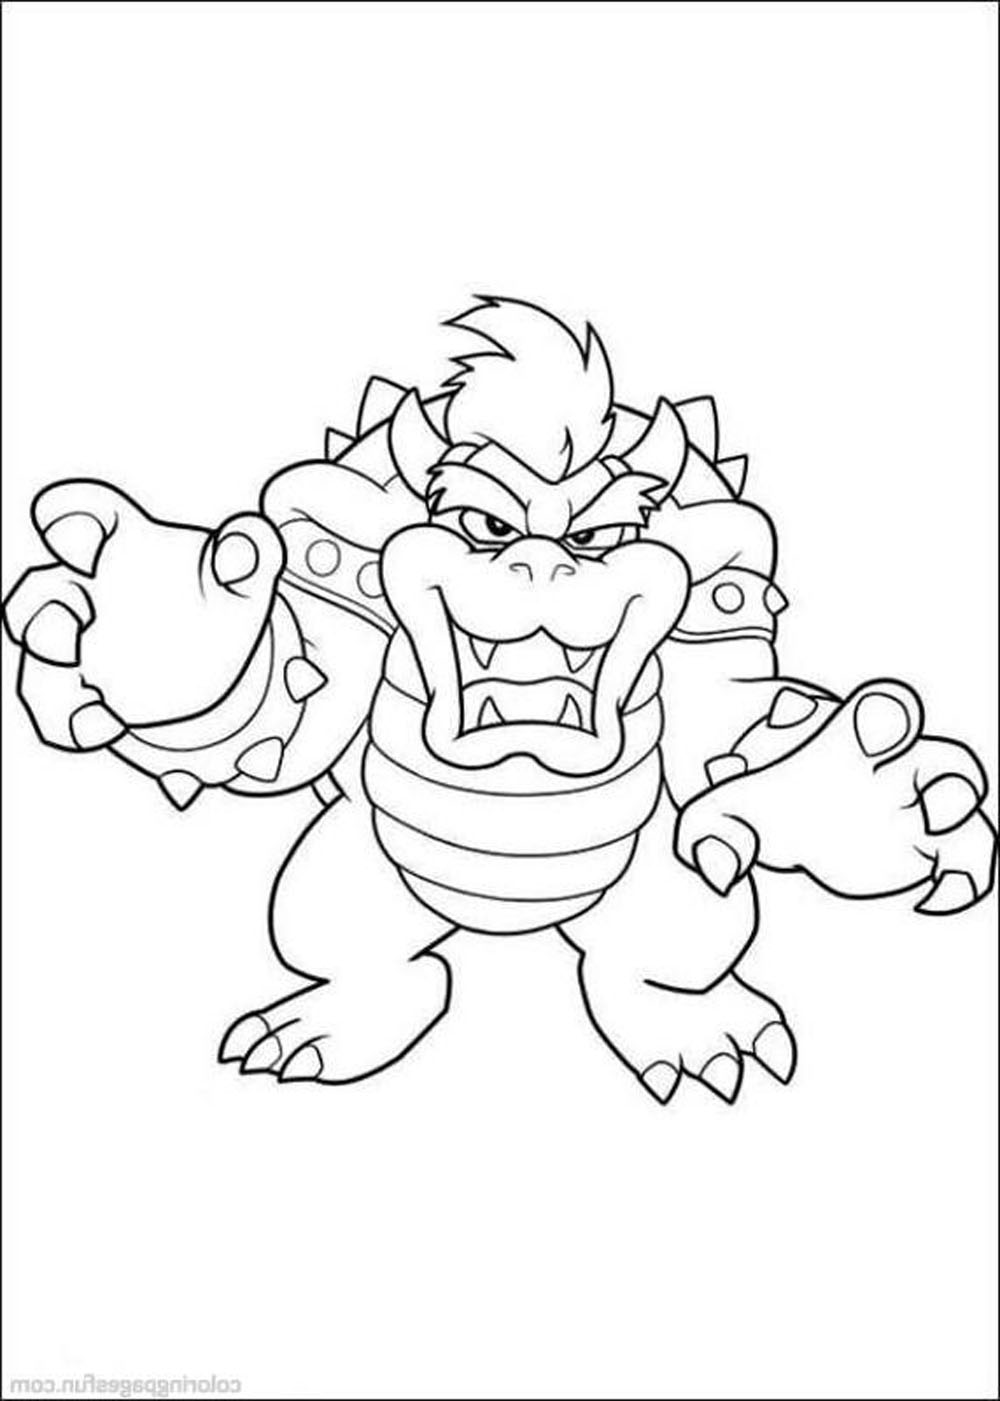 Super mario galaxy 2 coloring pages for Galaxy coloring pages